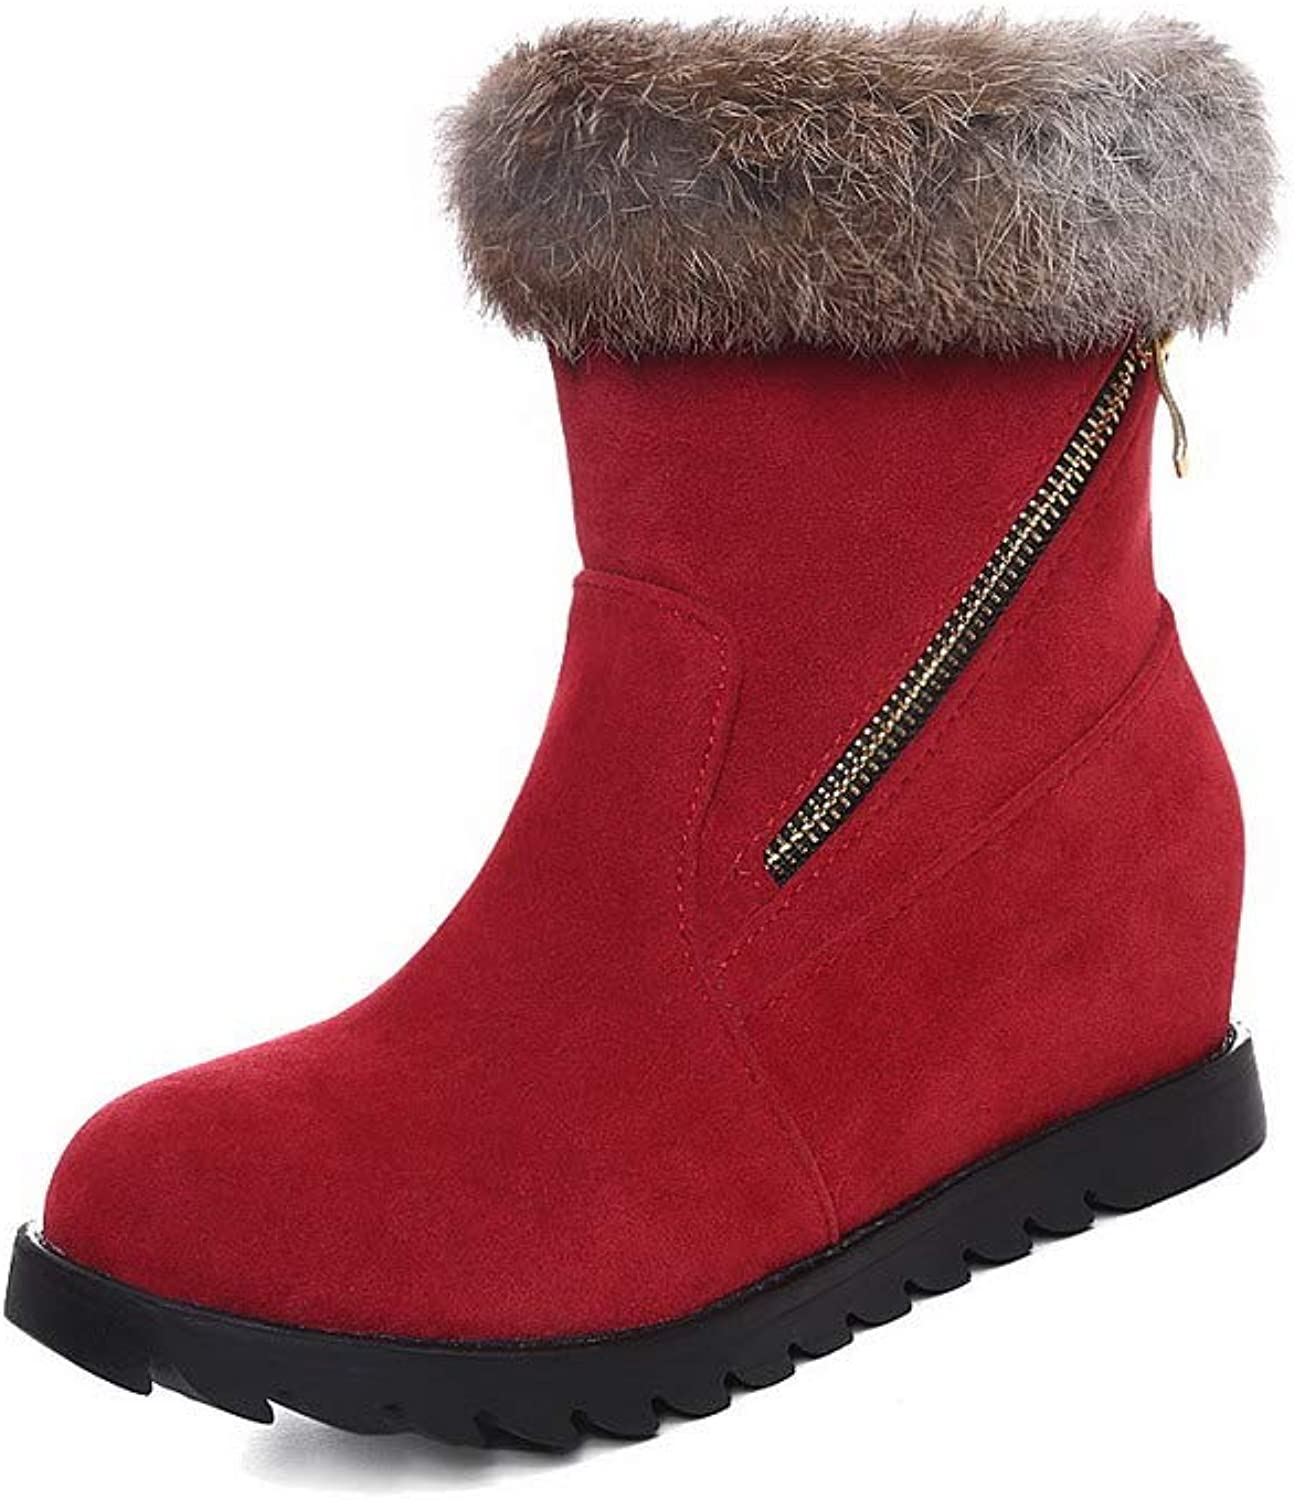 AmoonyFashion Women's Pull-On Kitten-Heels Frosted Assorted color Low-Top Boots, BUSXT121860